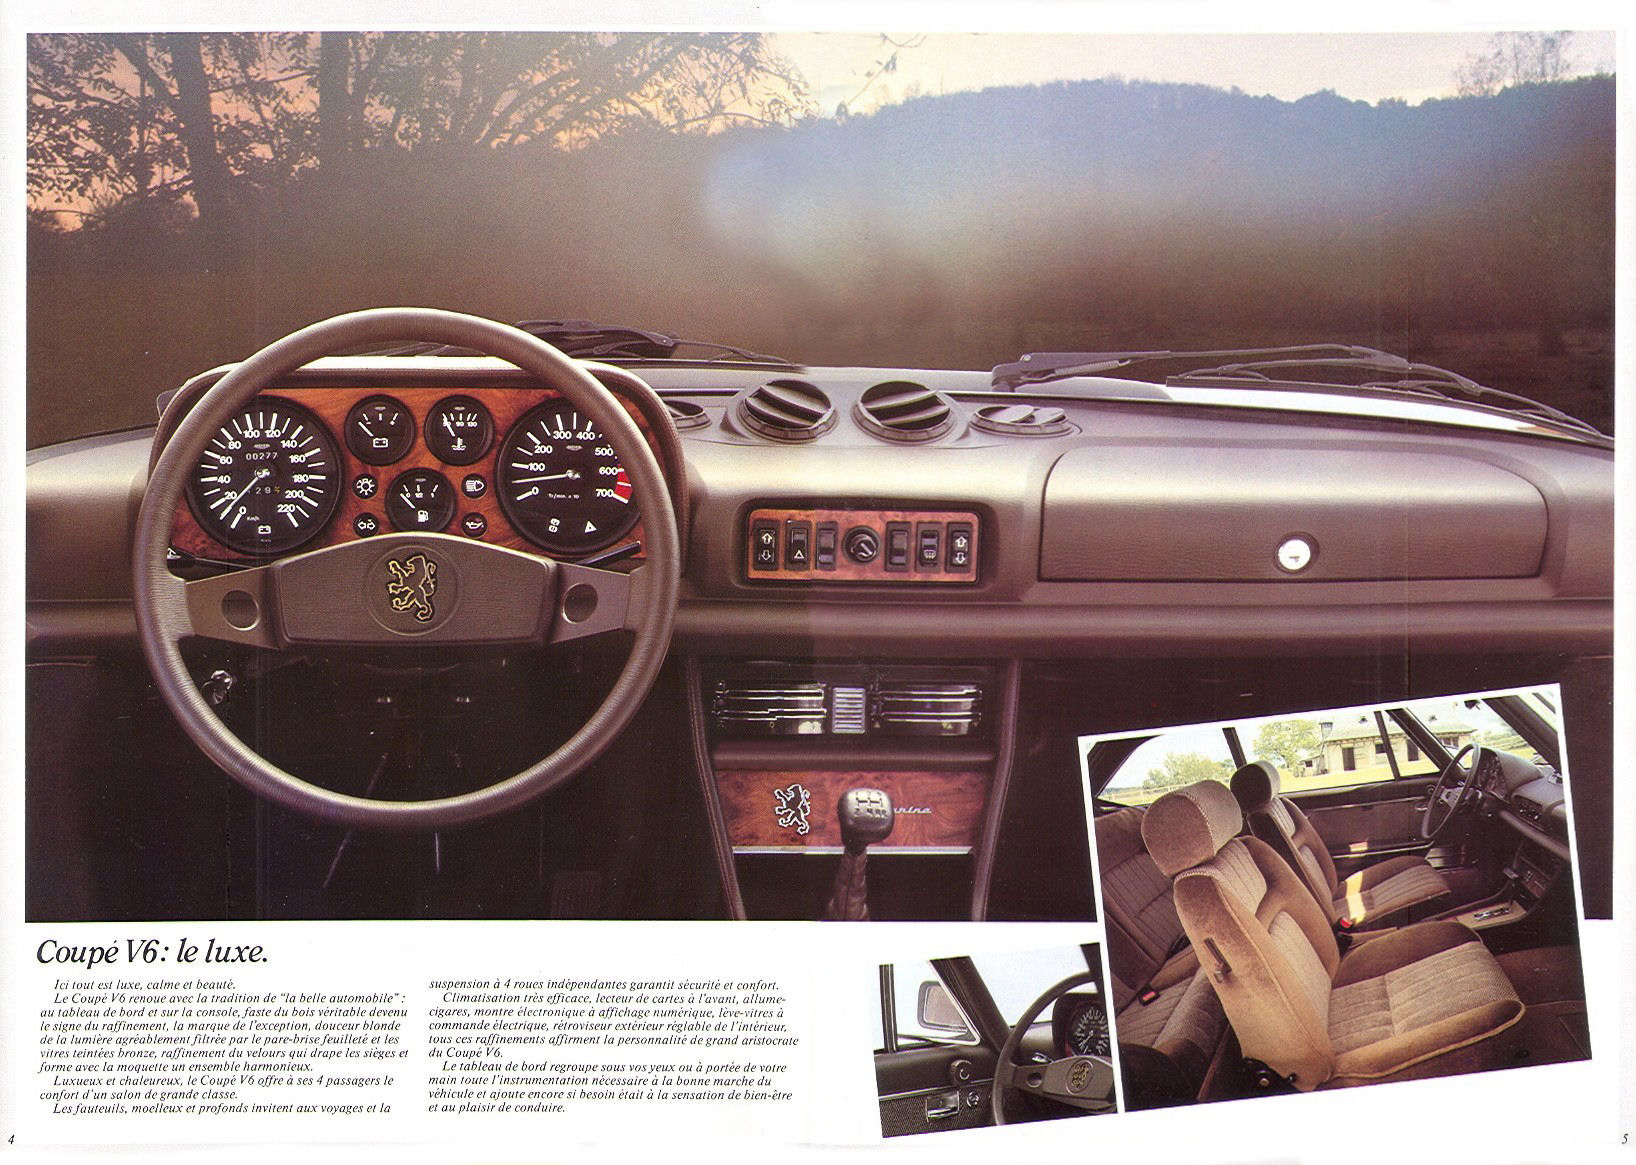 1983 peugeot 504 coupe cabriolet brochure for Interieur 504 coupe